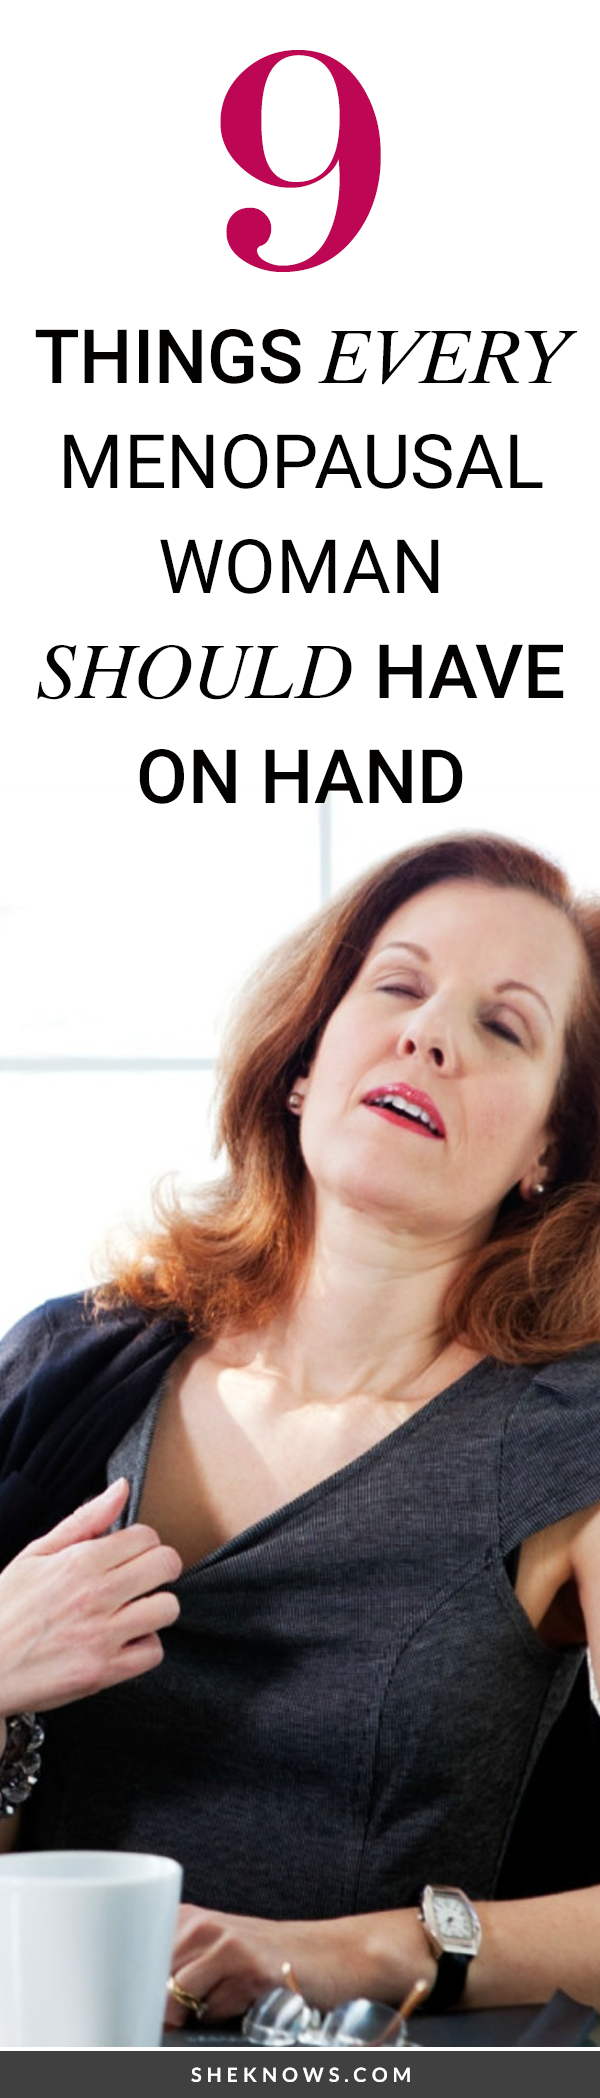 9 Things Every Menopausal Woman Should Definitely Have on Hand